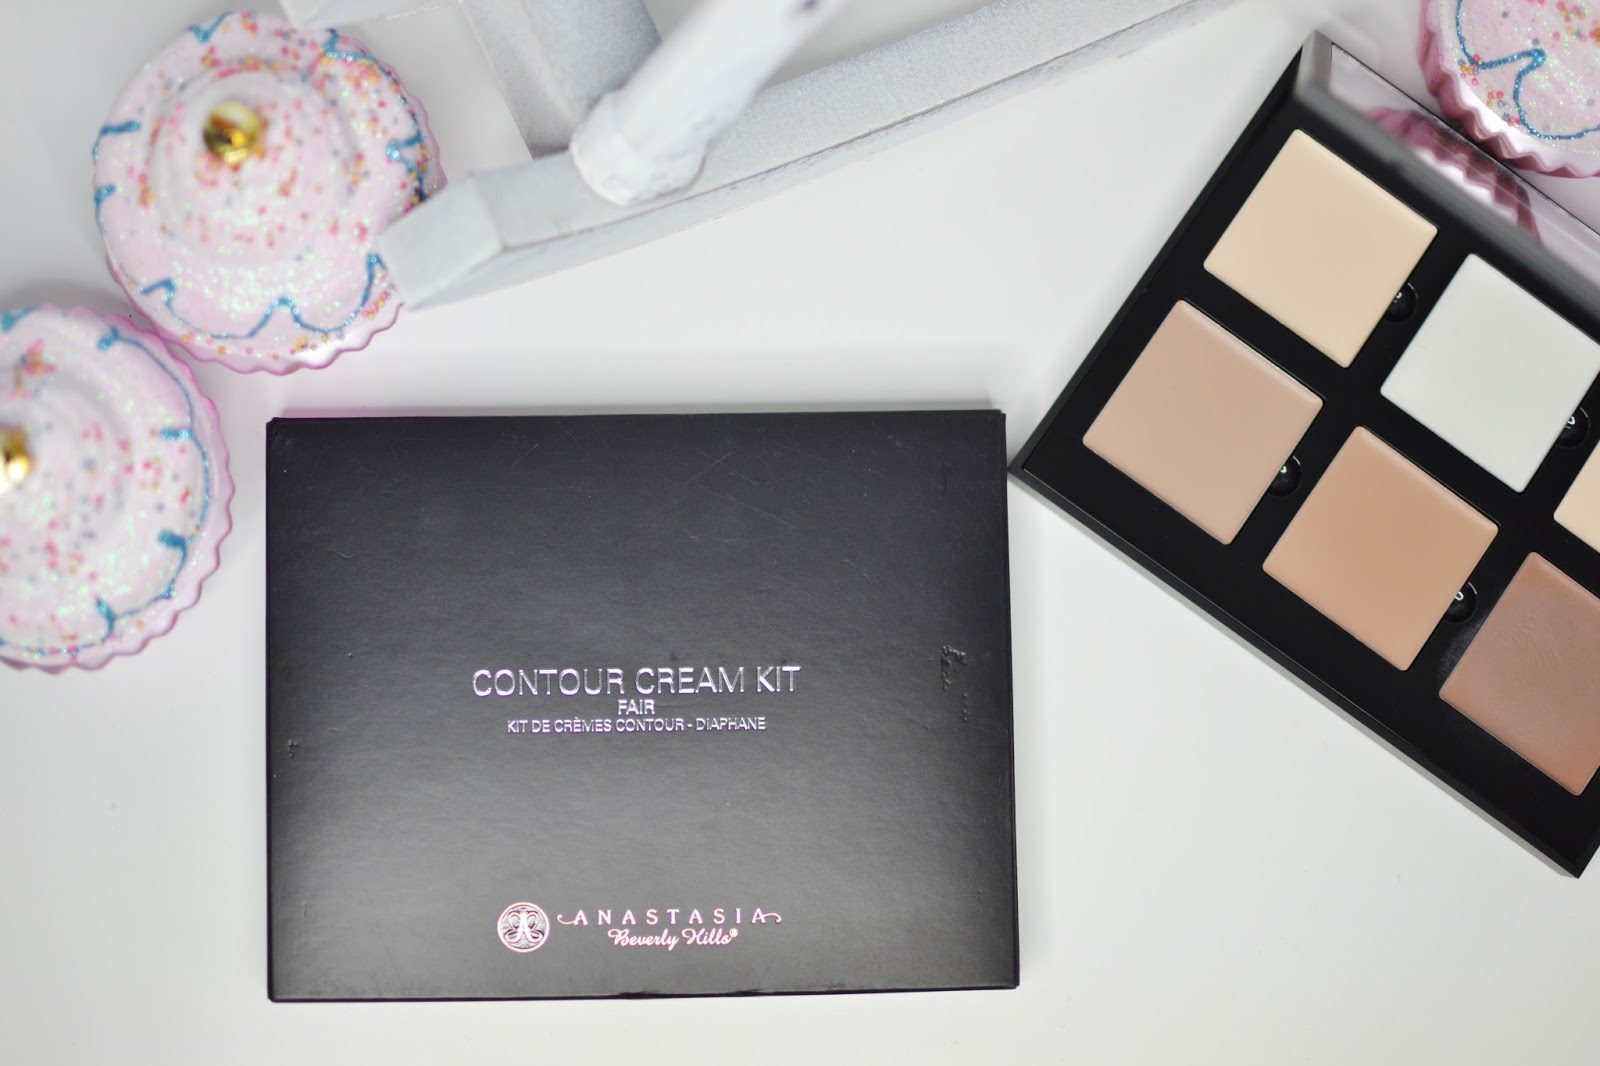 ANASTASIA BEVERLY HILLS CONTOUR CREAM KIT FAIR